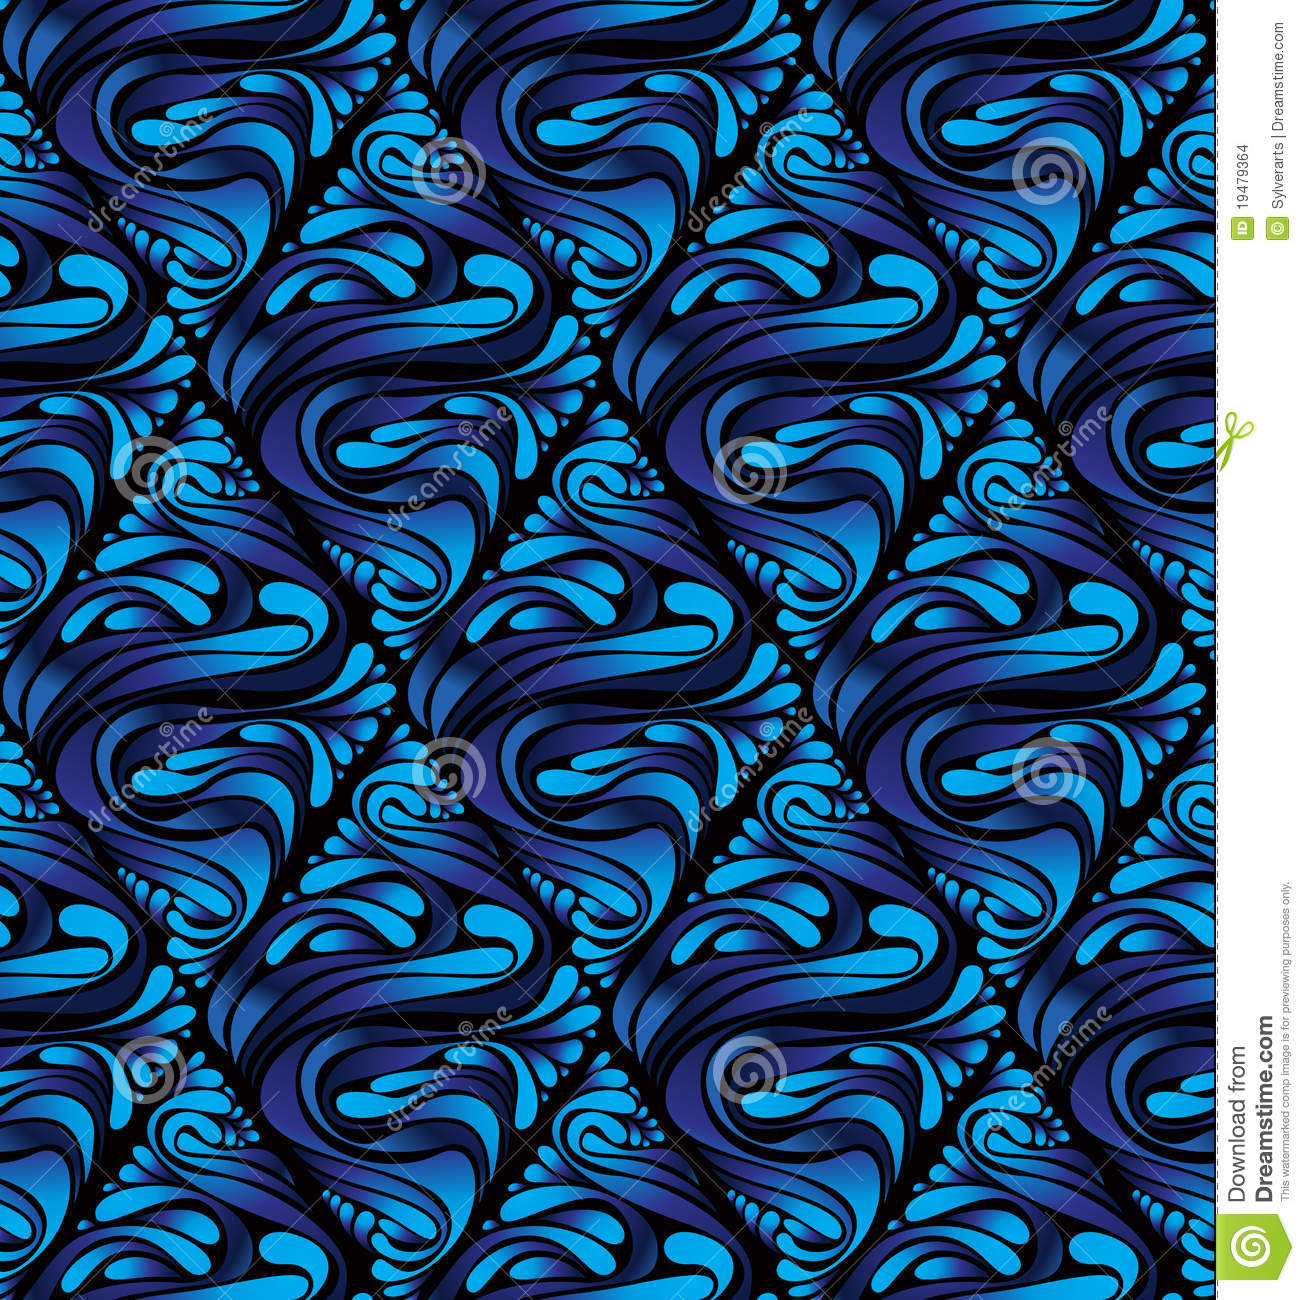 Water whirl seamless pattern stock images image 19479364 for Object pool design pattern